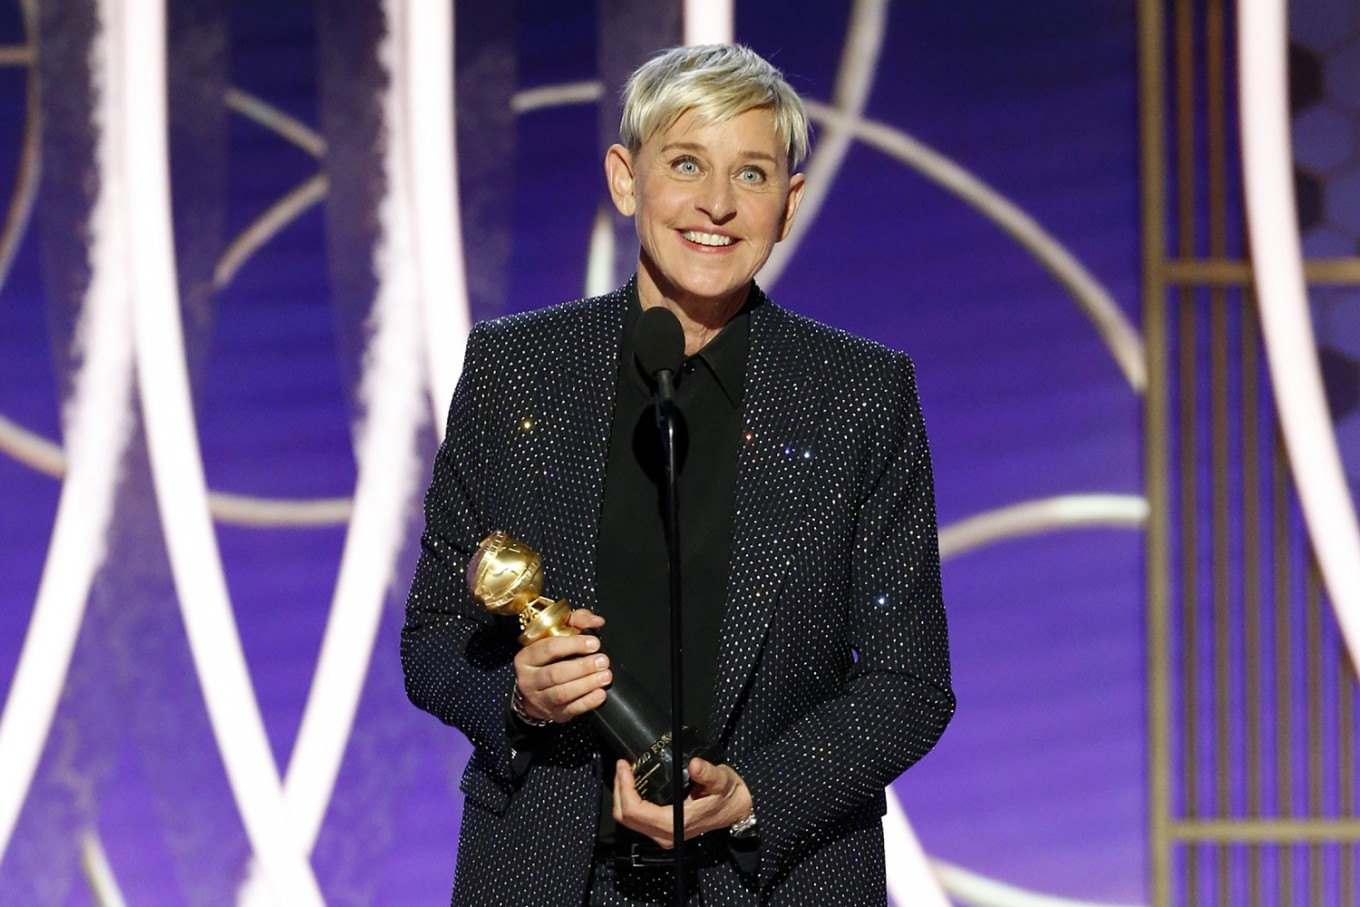 Ellen DeGeneres TV show to make workplace changes after probe of culture